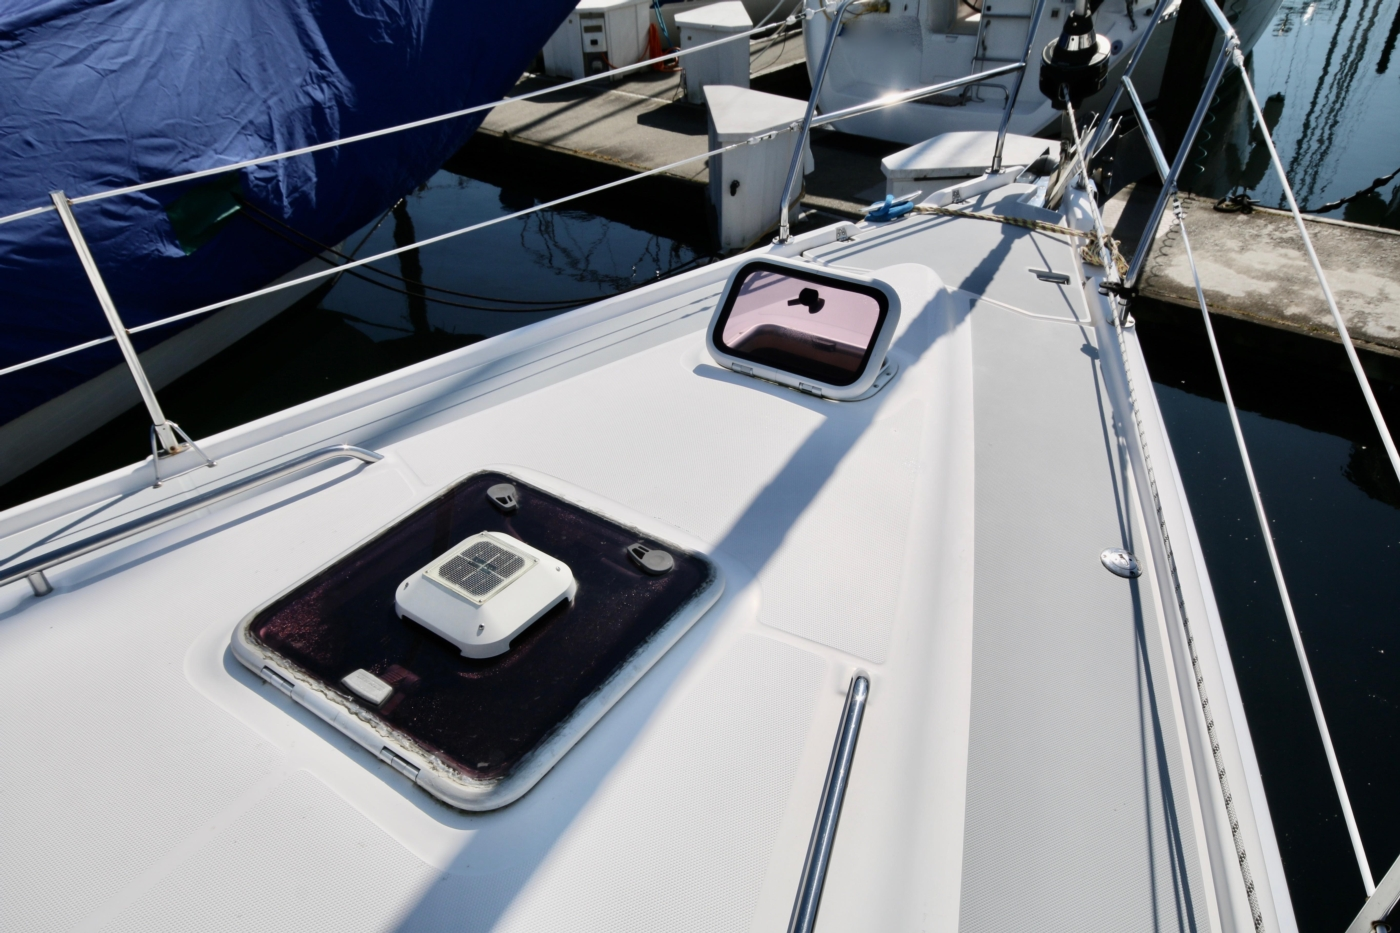 2004 Hunter Passage 420, The foredeck area